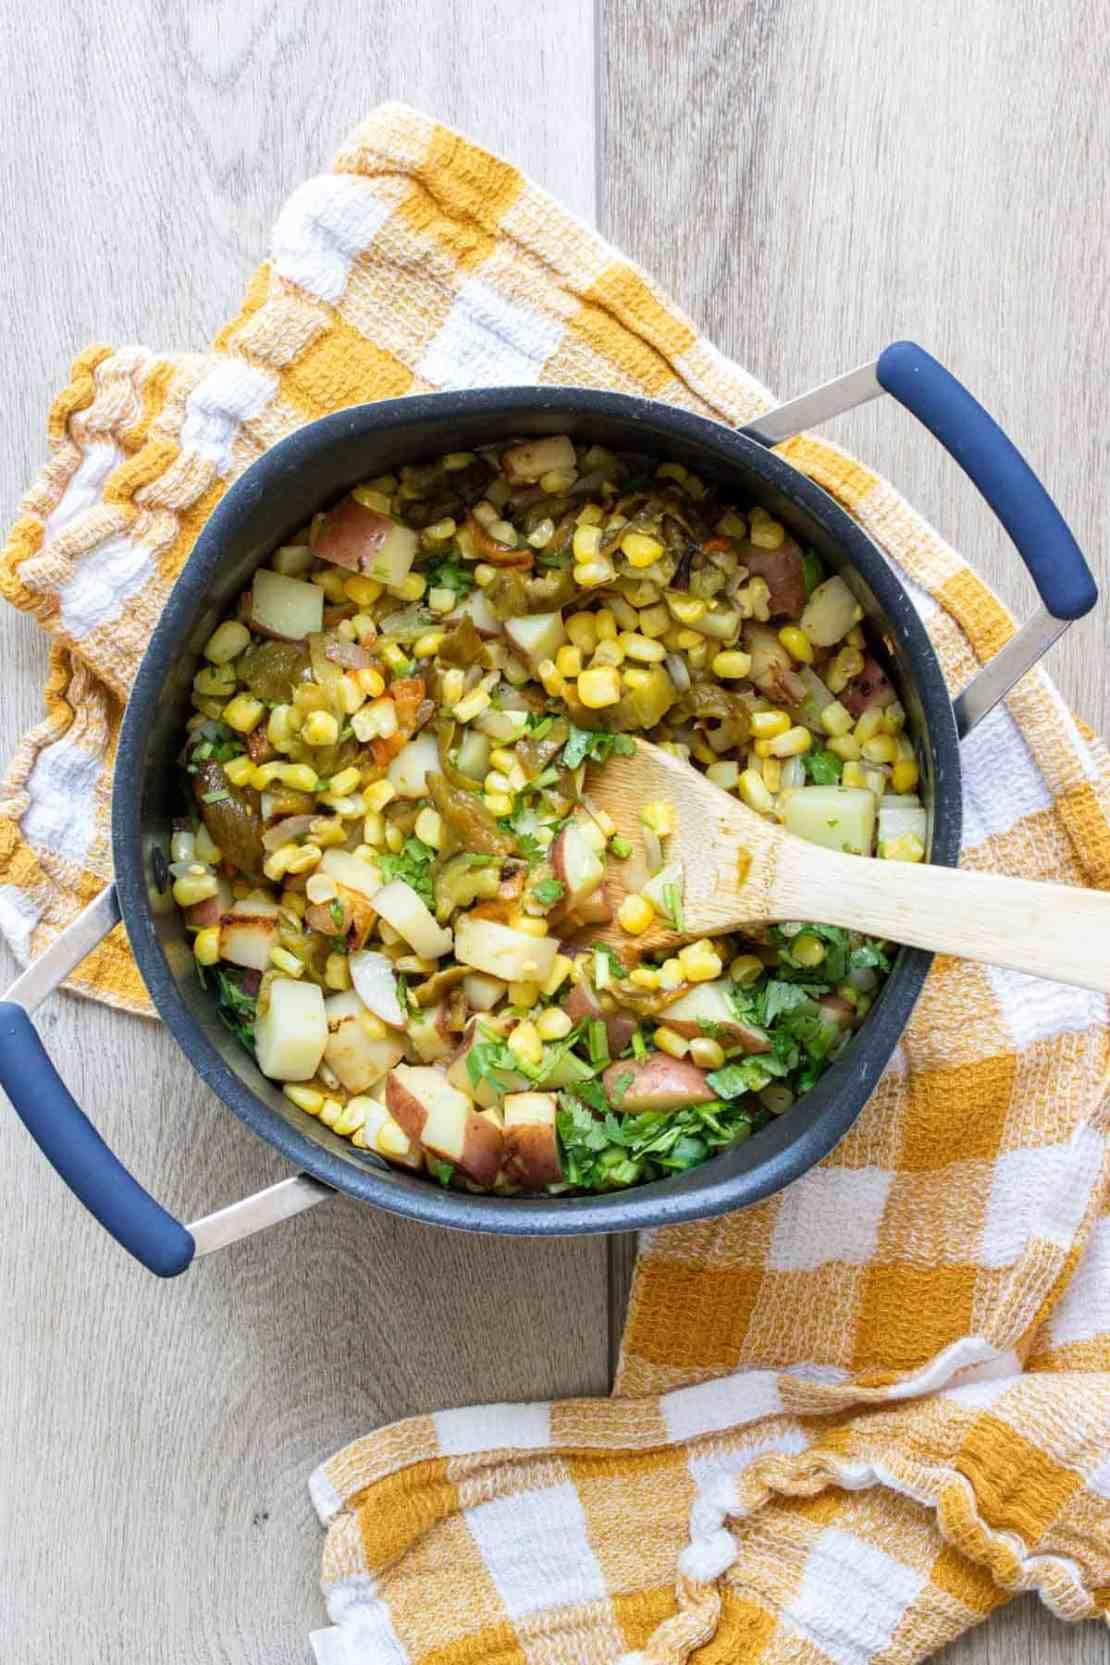 Wooden spoon mixing chopped potatoes, corn and peppers in a pot